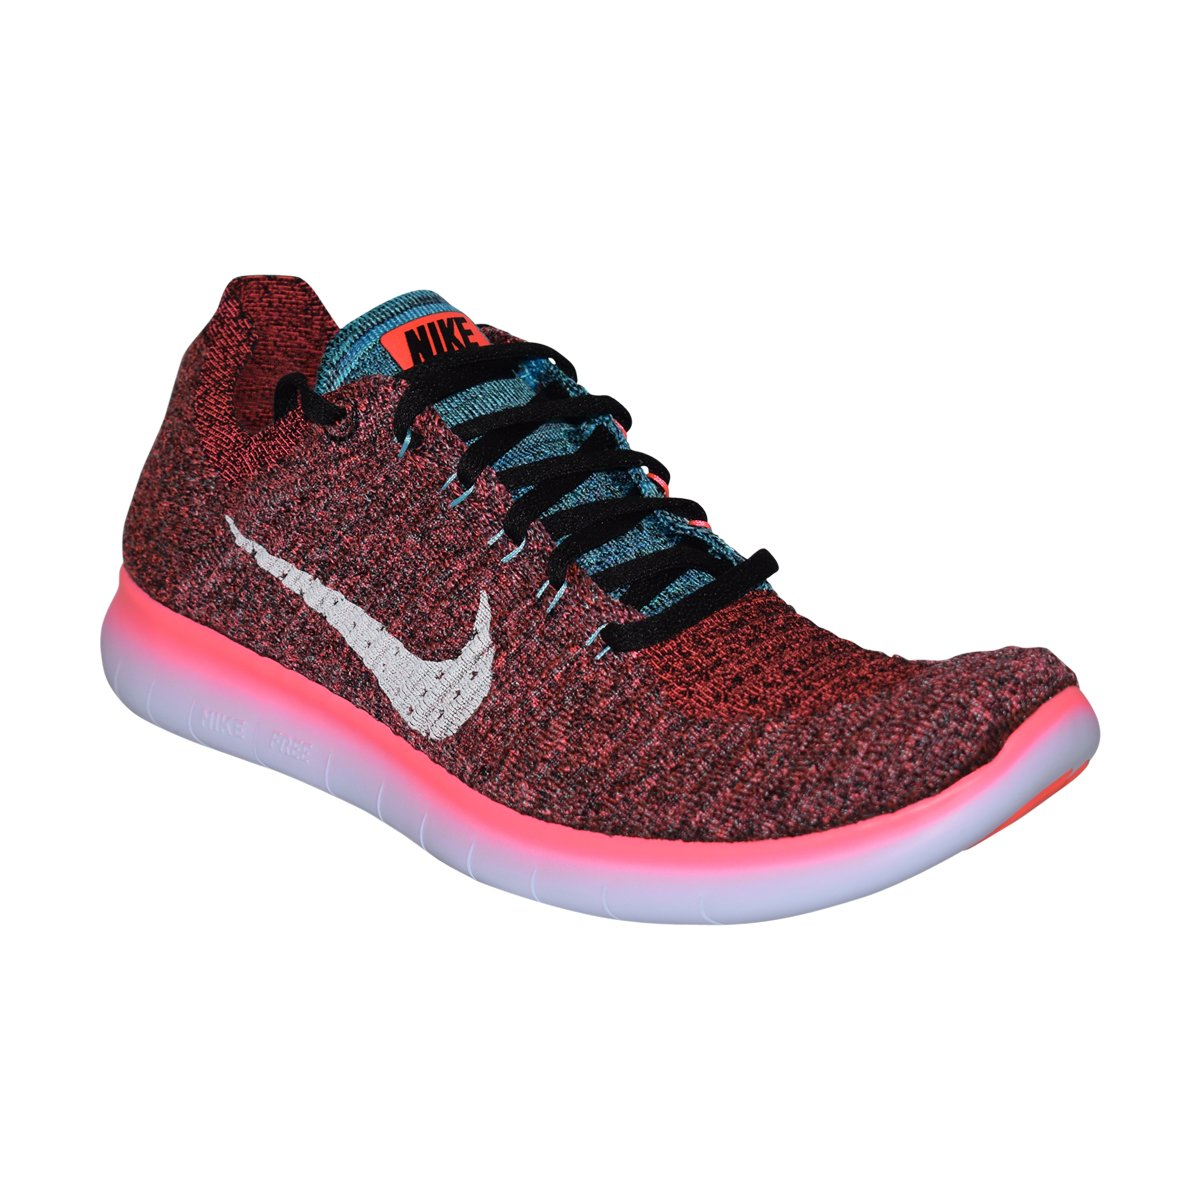 NIKE Mens Free RN Flyknit (Hot Punch/White-Black, 7.5 D(M) US)